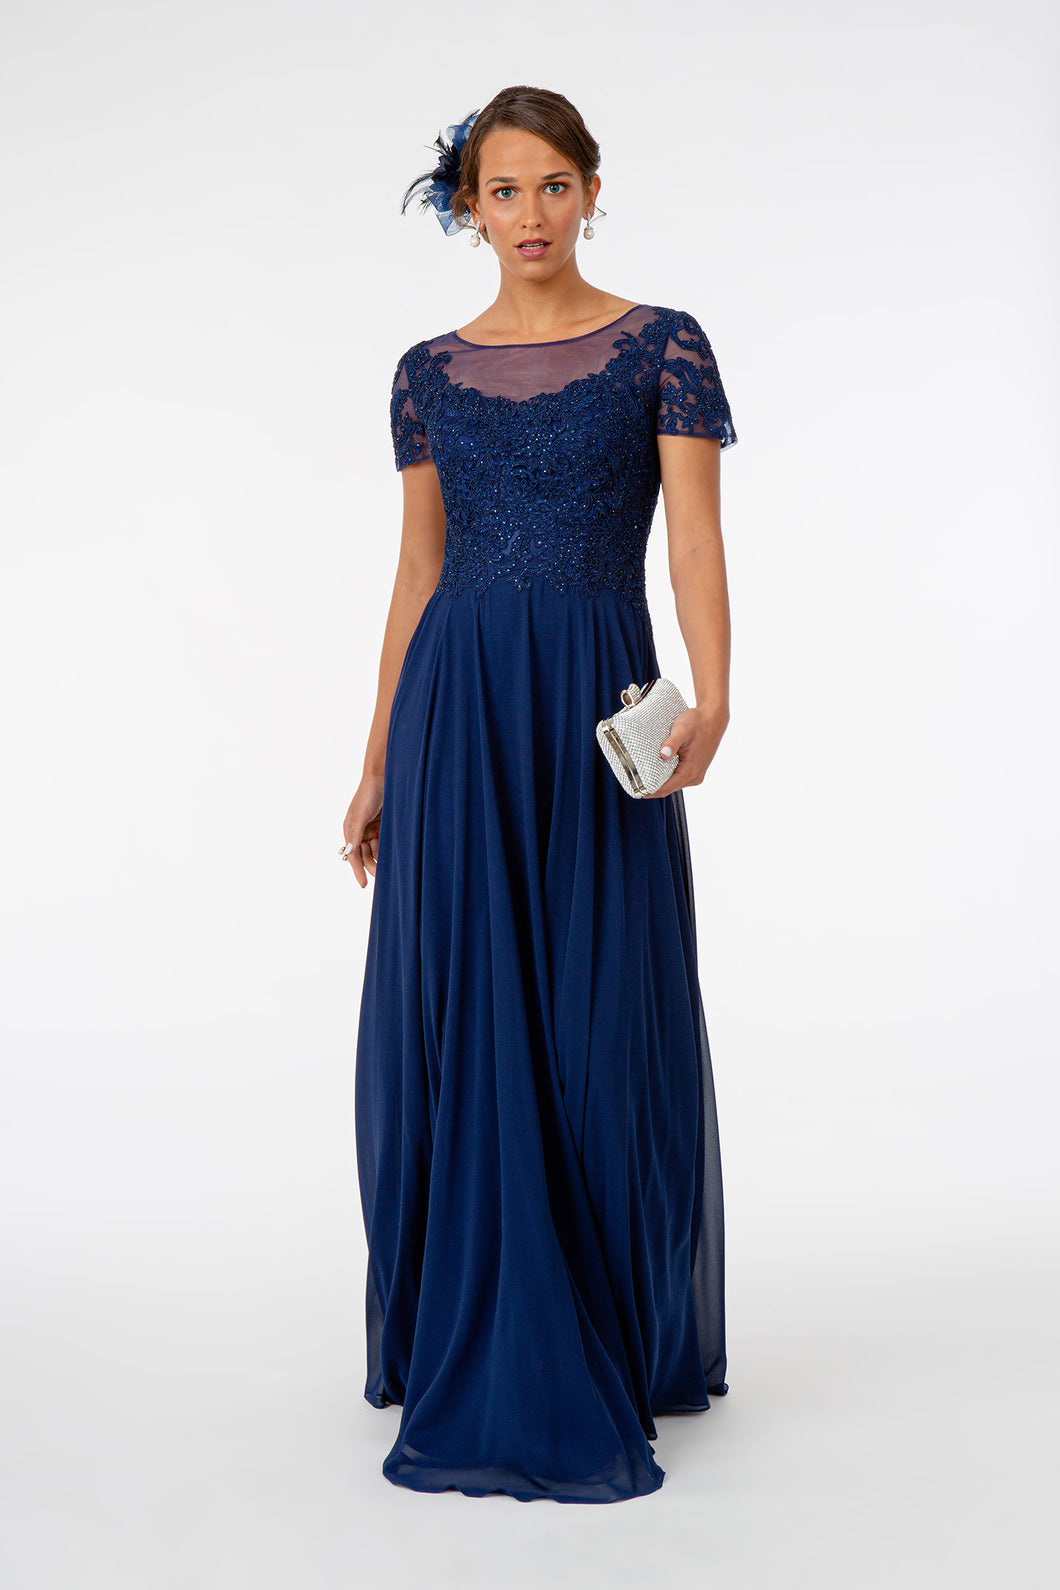 Leona Mothers Dress Sheer Neckline Embroidered Top Mothers Gown G2813XR-Navy SAMPLE IN STORE (in silver)